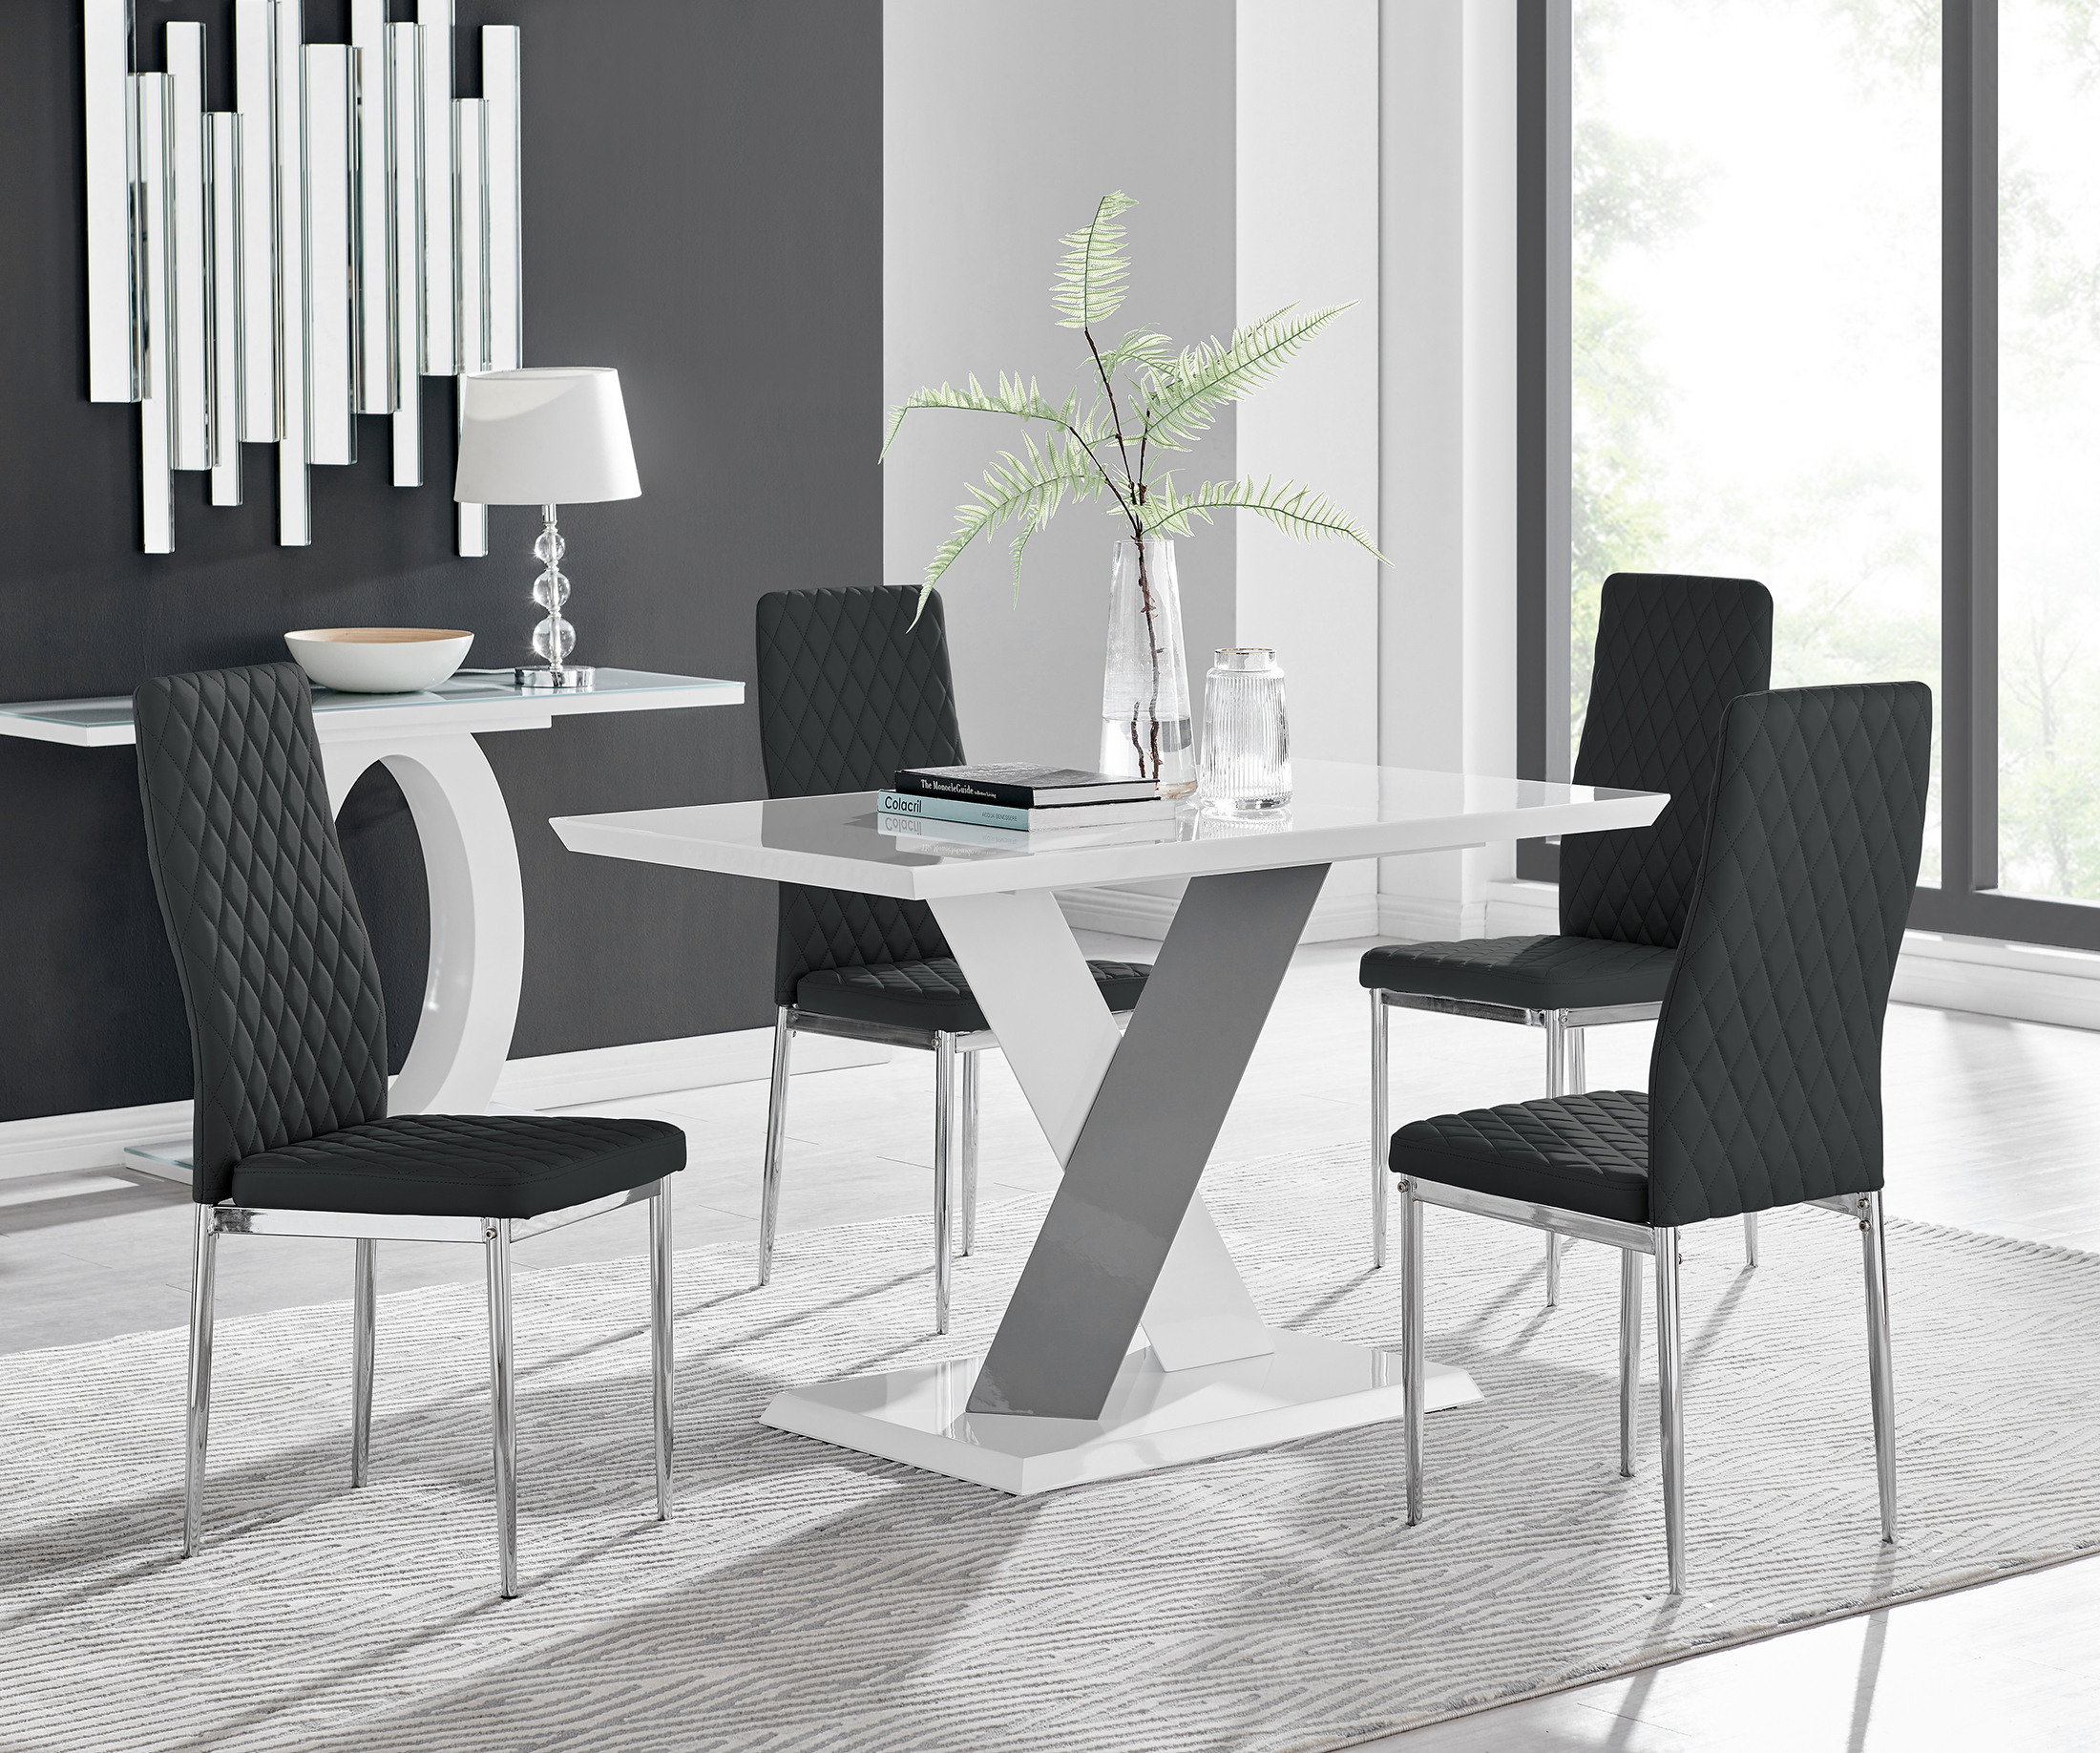 Monza 4 White/grey Dining Table & 4 Milan Chairs Intended For Monza Tv Stands (View 5 of 20)